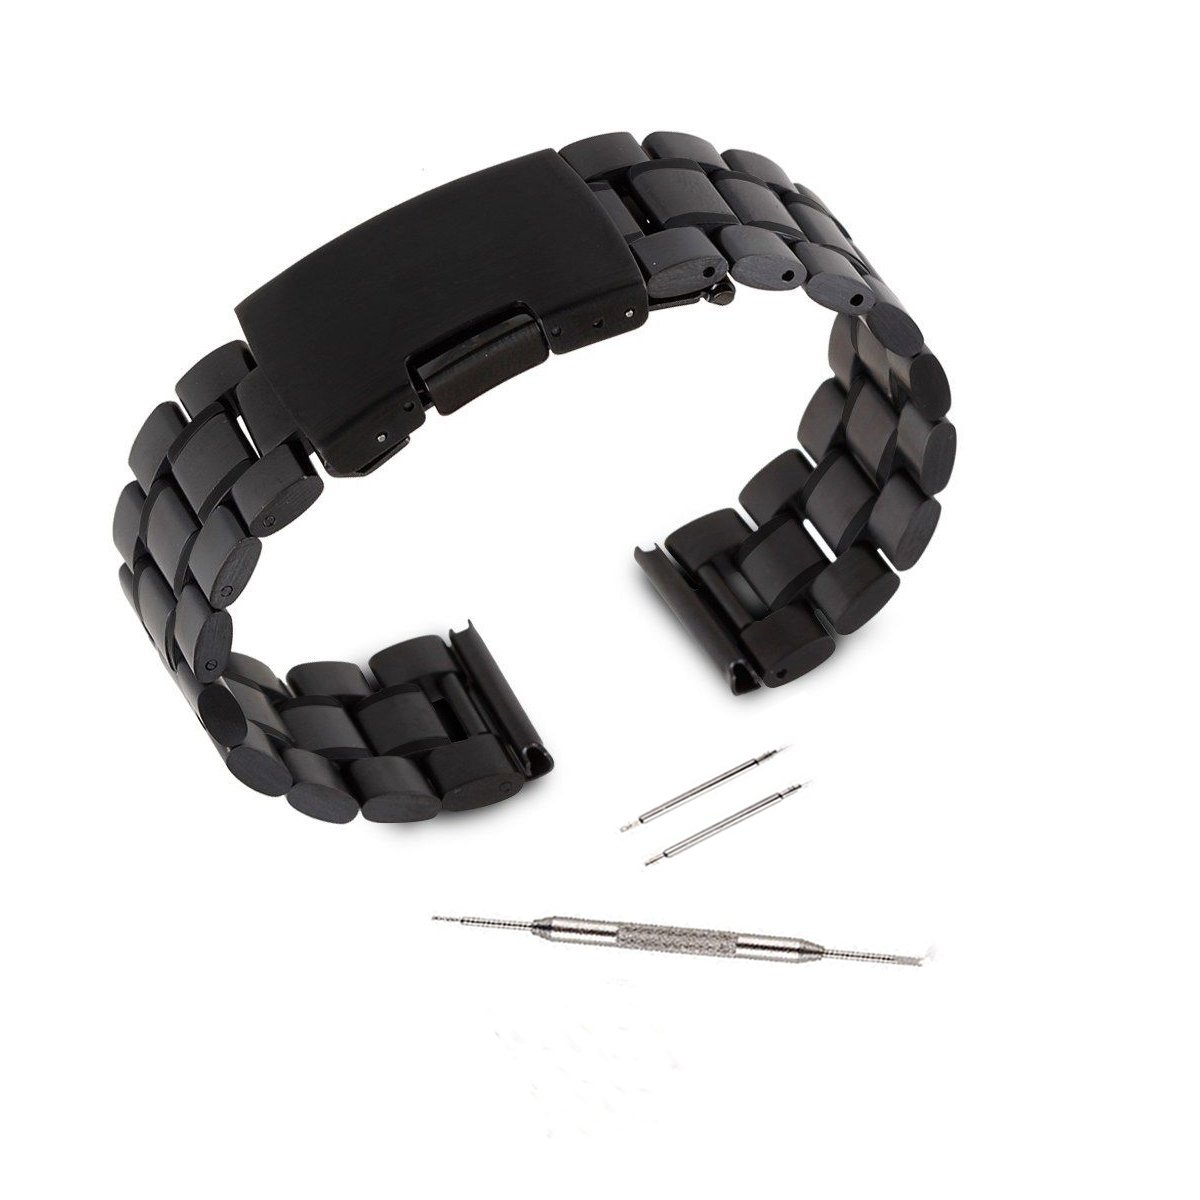 Kuxiu 22mm Stainless Steel Replacement Watch Band Strap for LG GR W100 W110 & Samsung Gear 2nd & Pebble Smartwatch Black Color + Tools